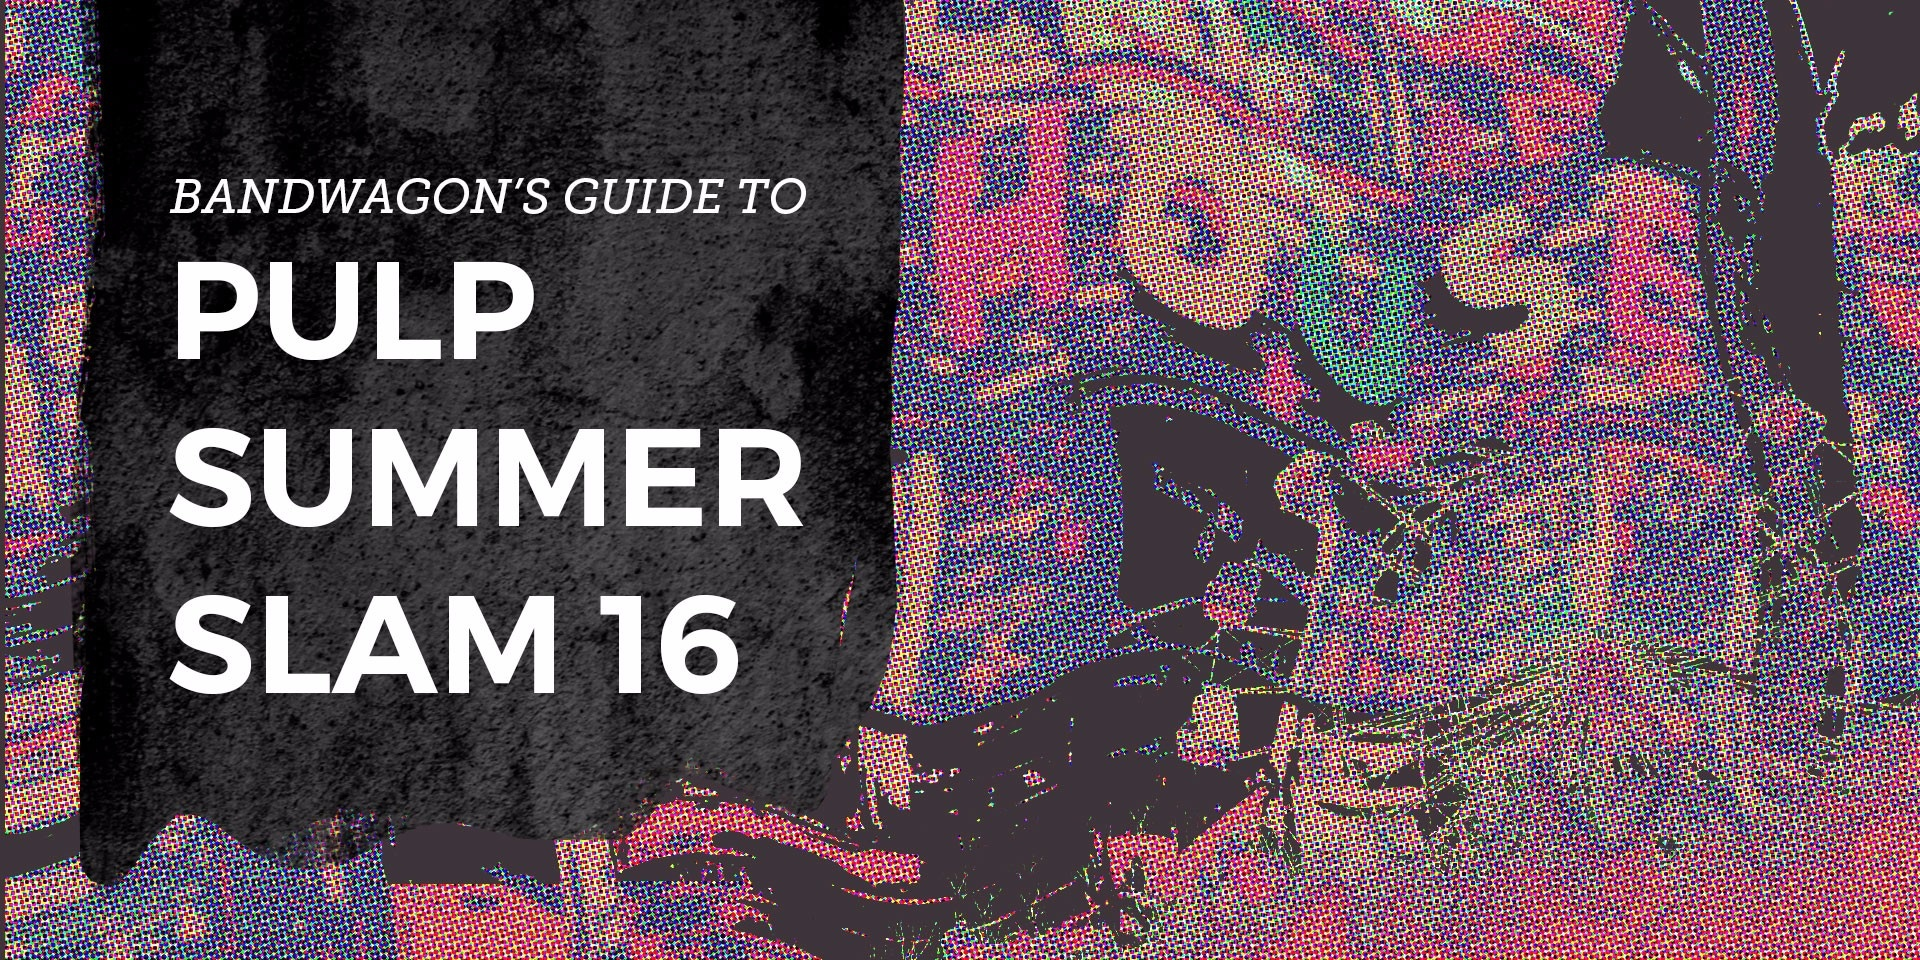 Bandwagon's Guide to Pulp Summer Slam 16